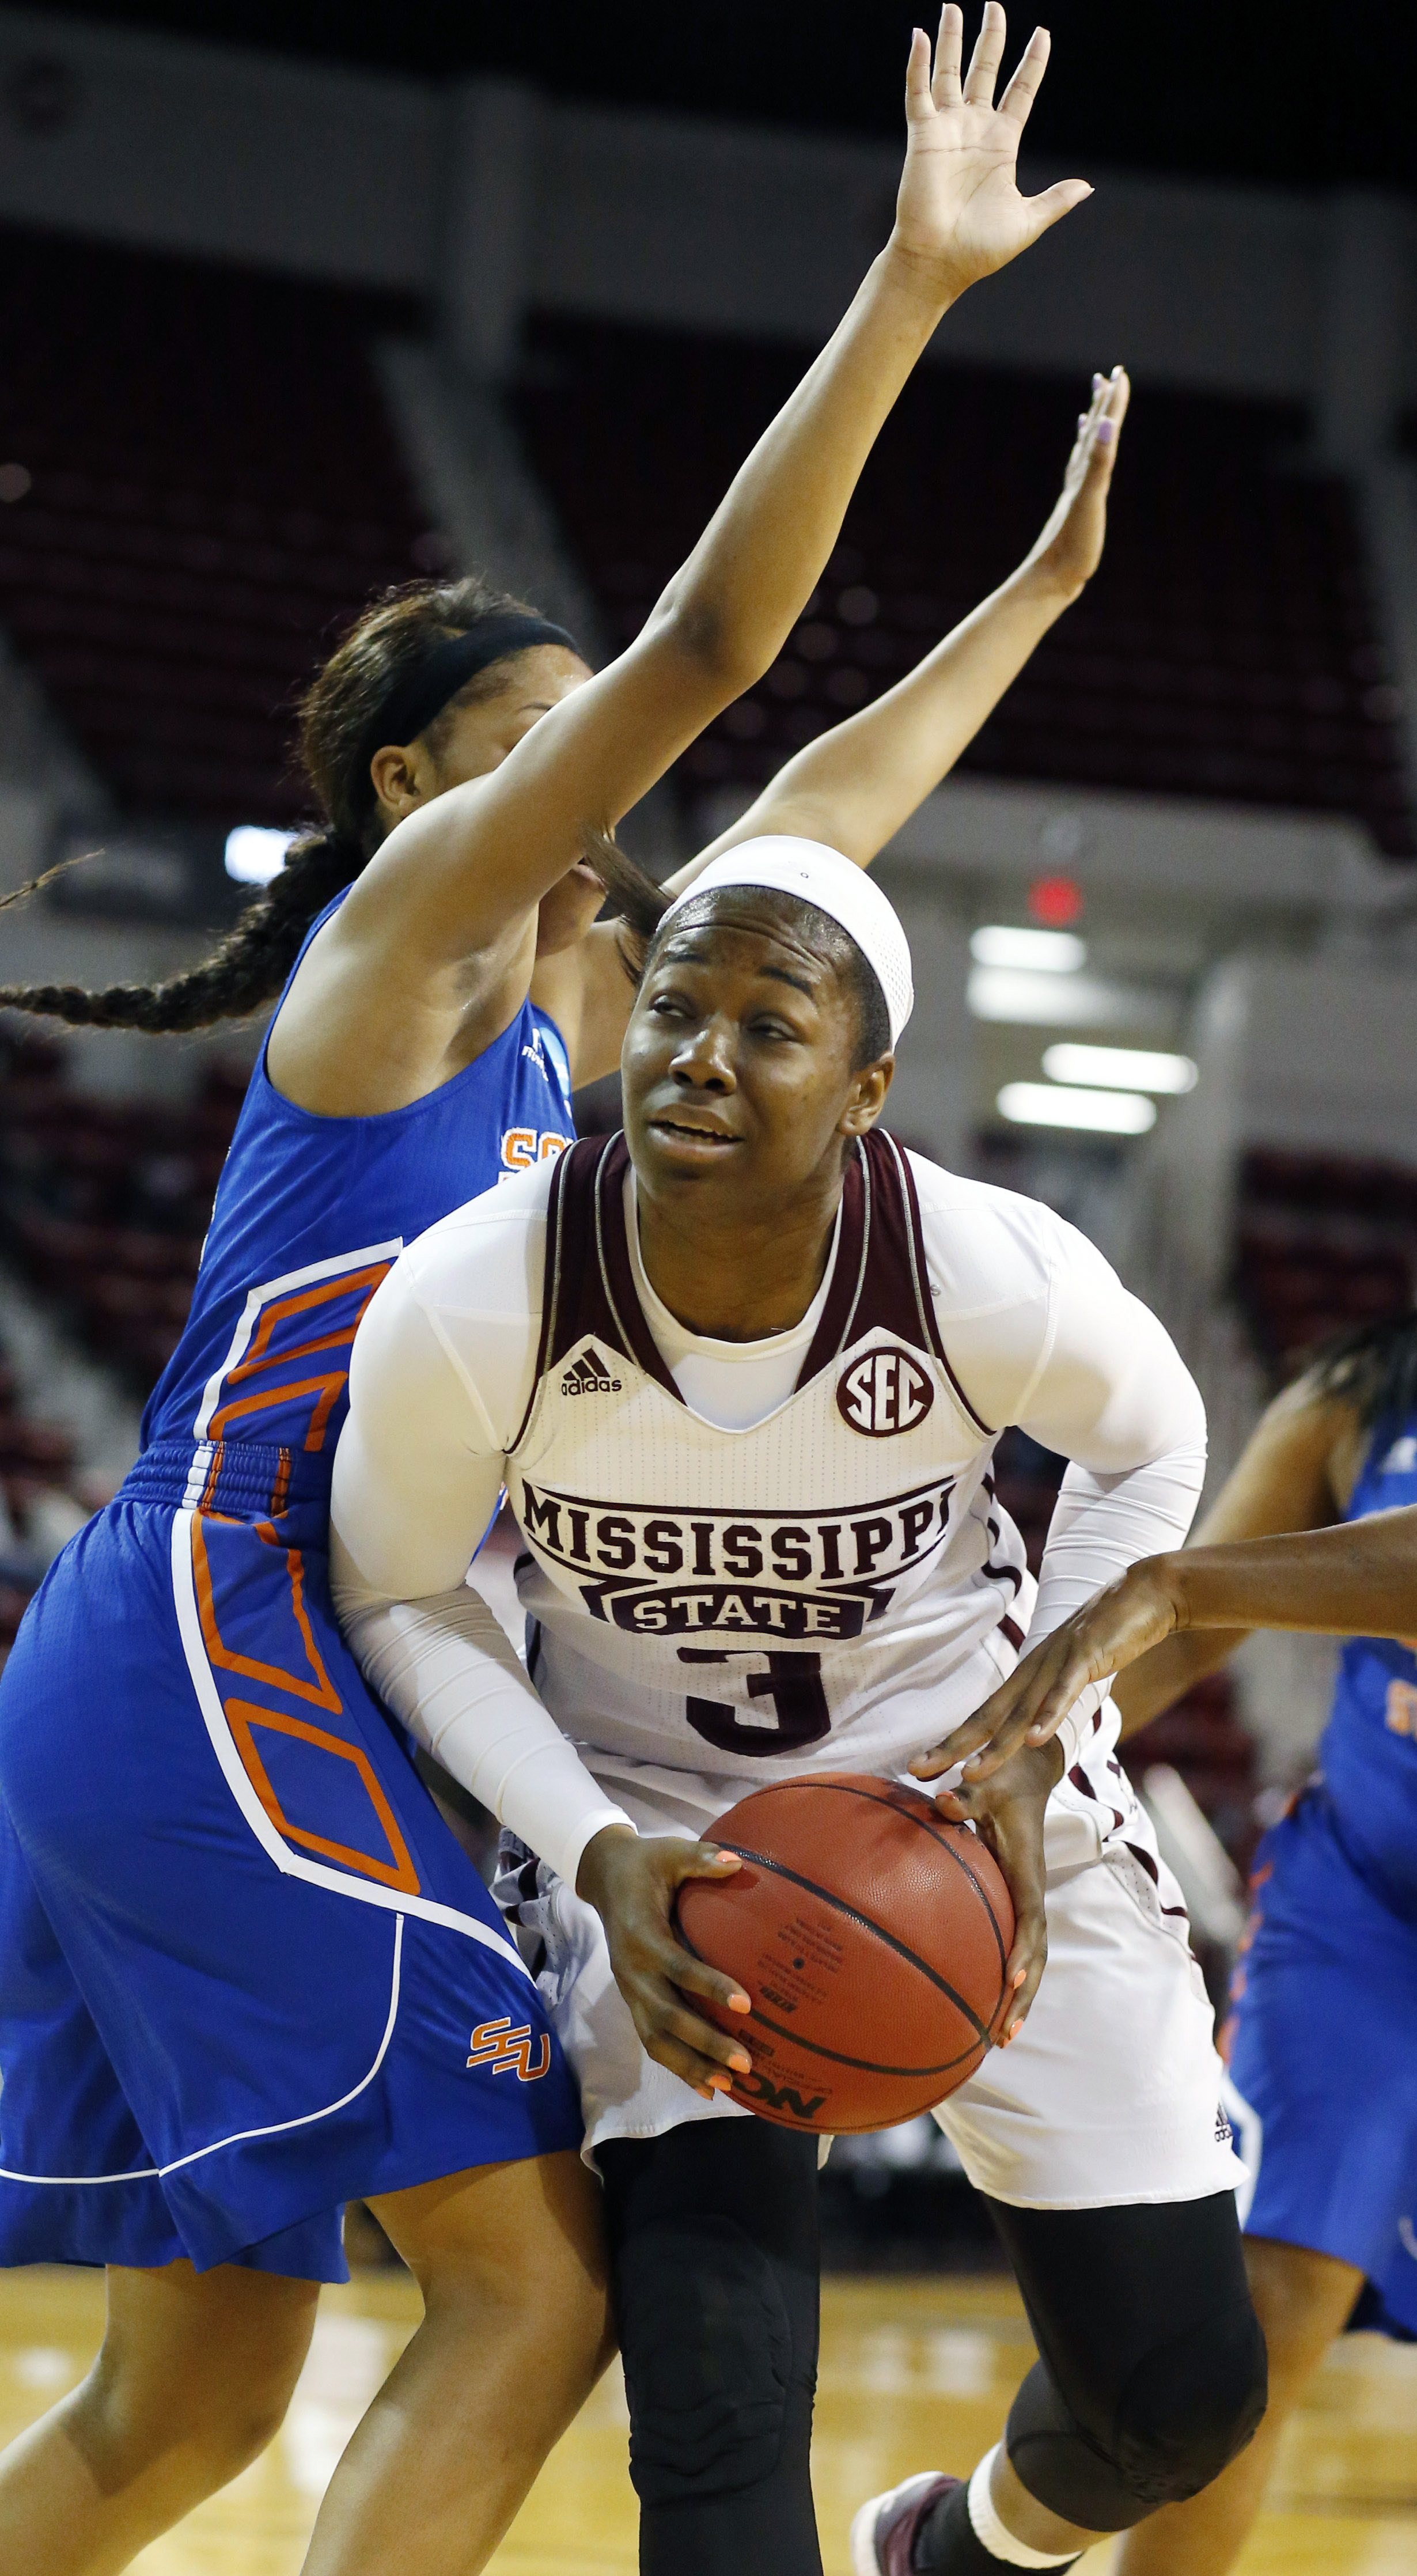 Mississippi State forward Breanna Richardson (3) looks for someone to pass to as a Savannah State player defends in the first half of an NCAA college basketball game in Starkville, Miss., Sunday, Nov. 29, 2015. (AP Photo/Rogelio V. Solis)